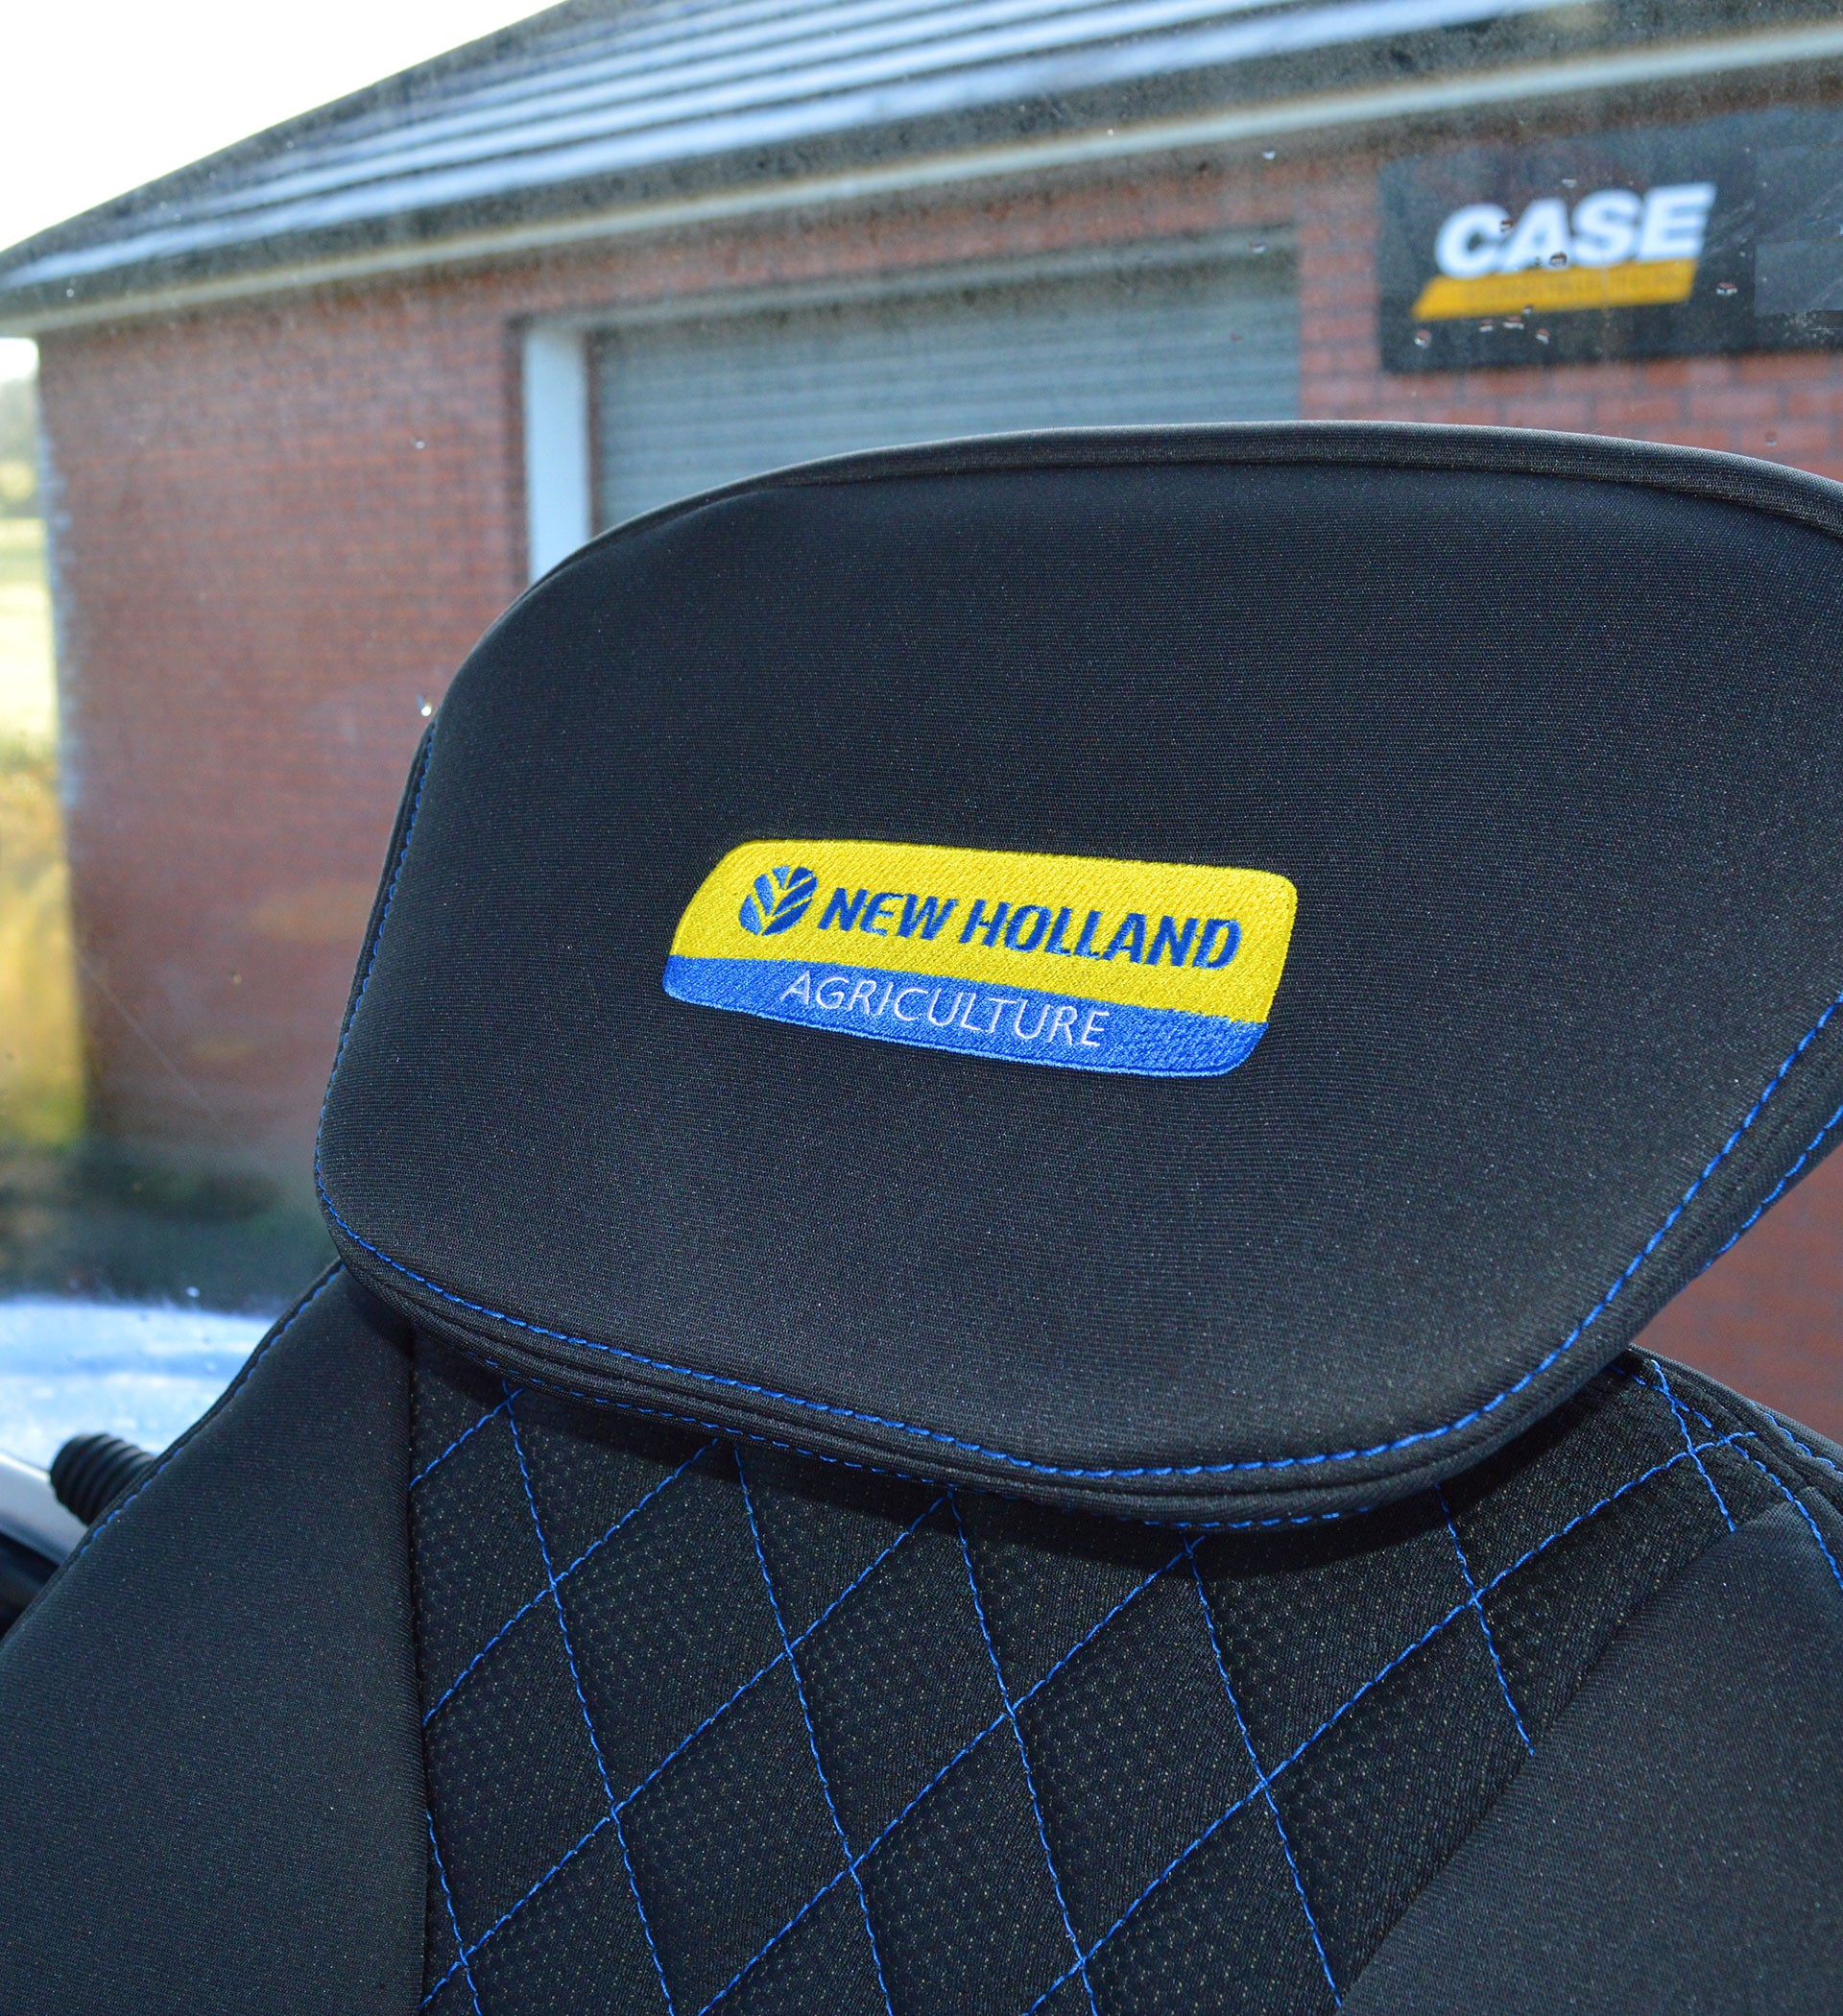 New Holland Tractor Tailored Seat Covers For Grammer Maximo Dynamic Seat  and Passenger Side Seat